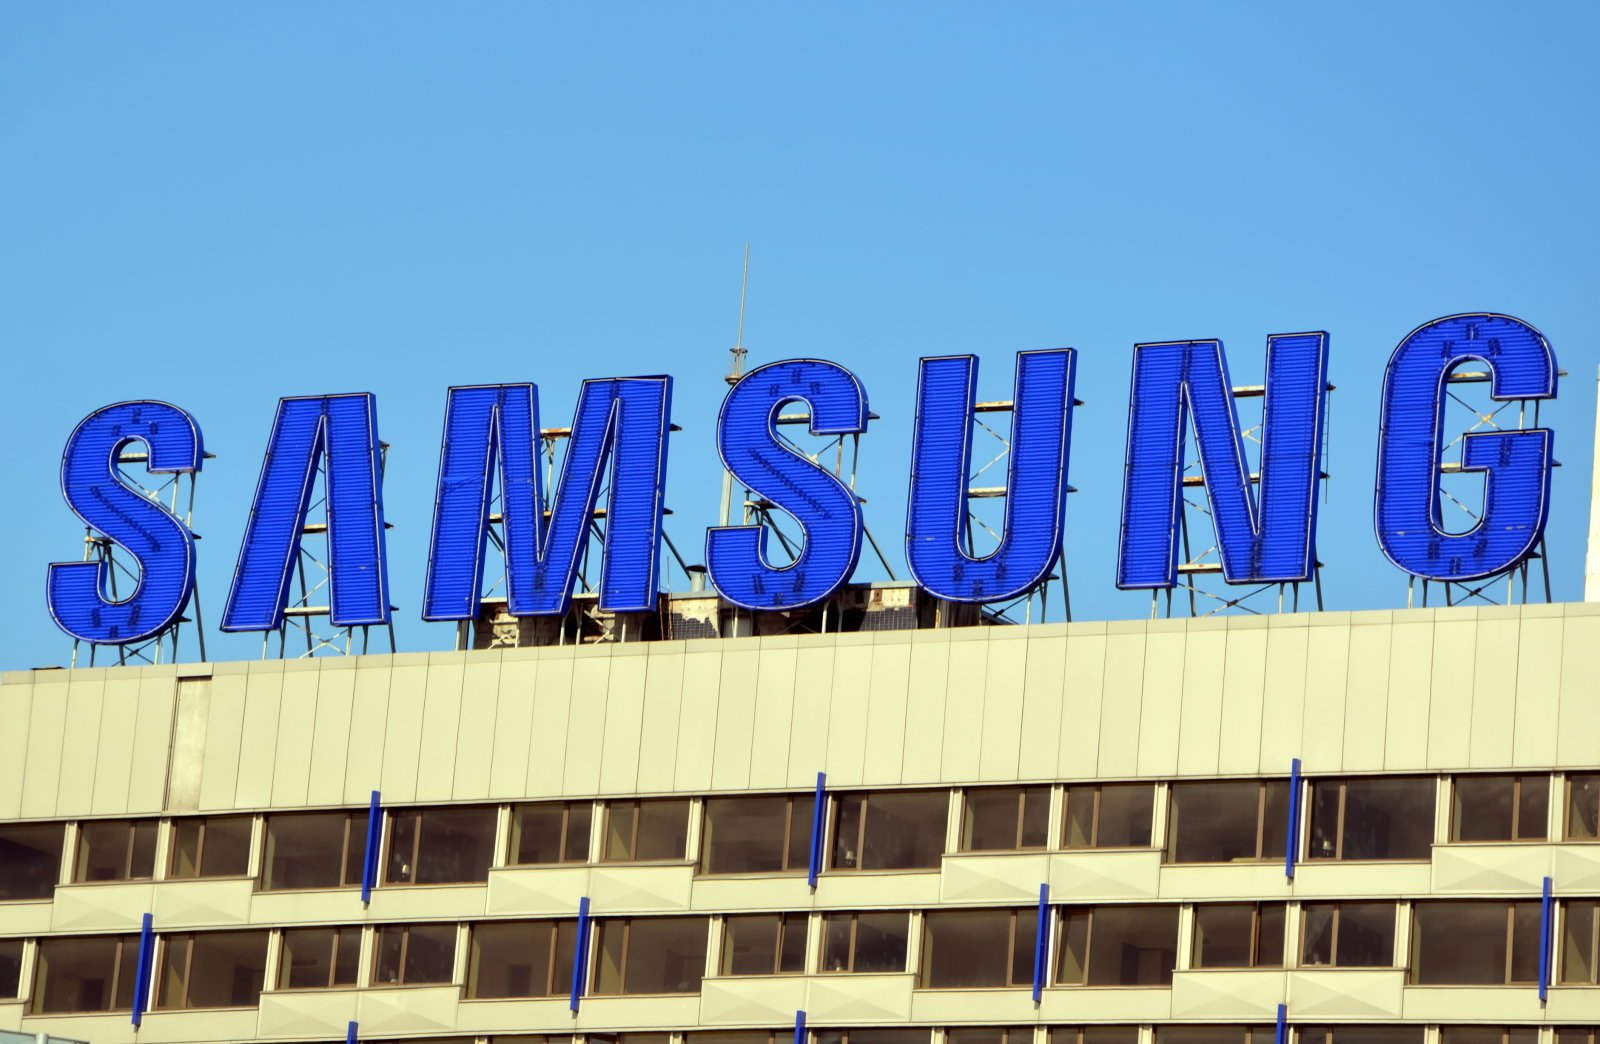 Samsung fully switch to renewable energy sources by 2020